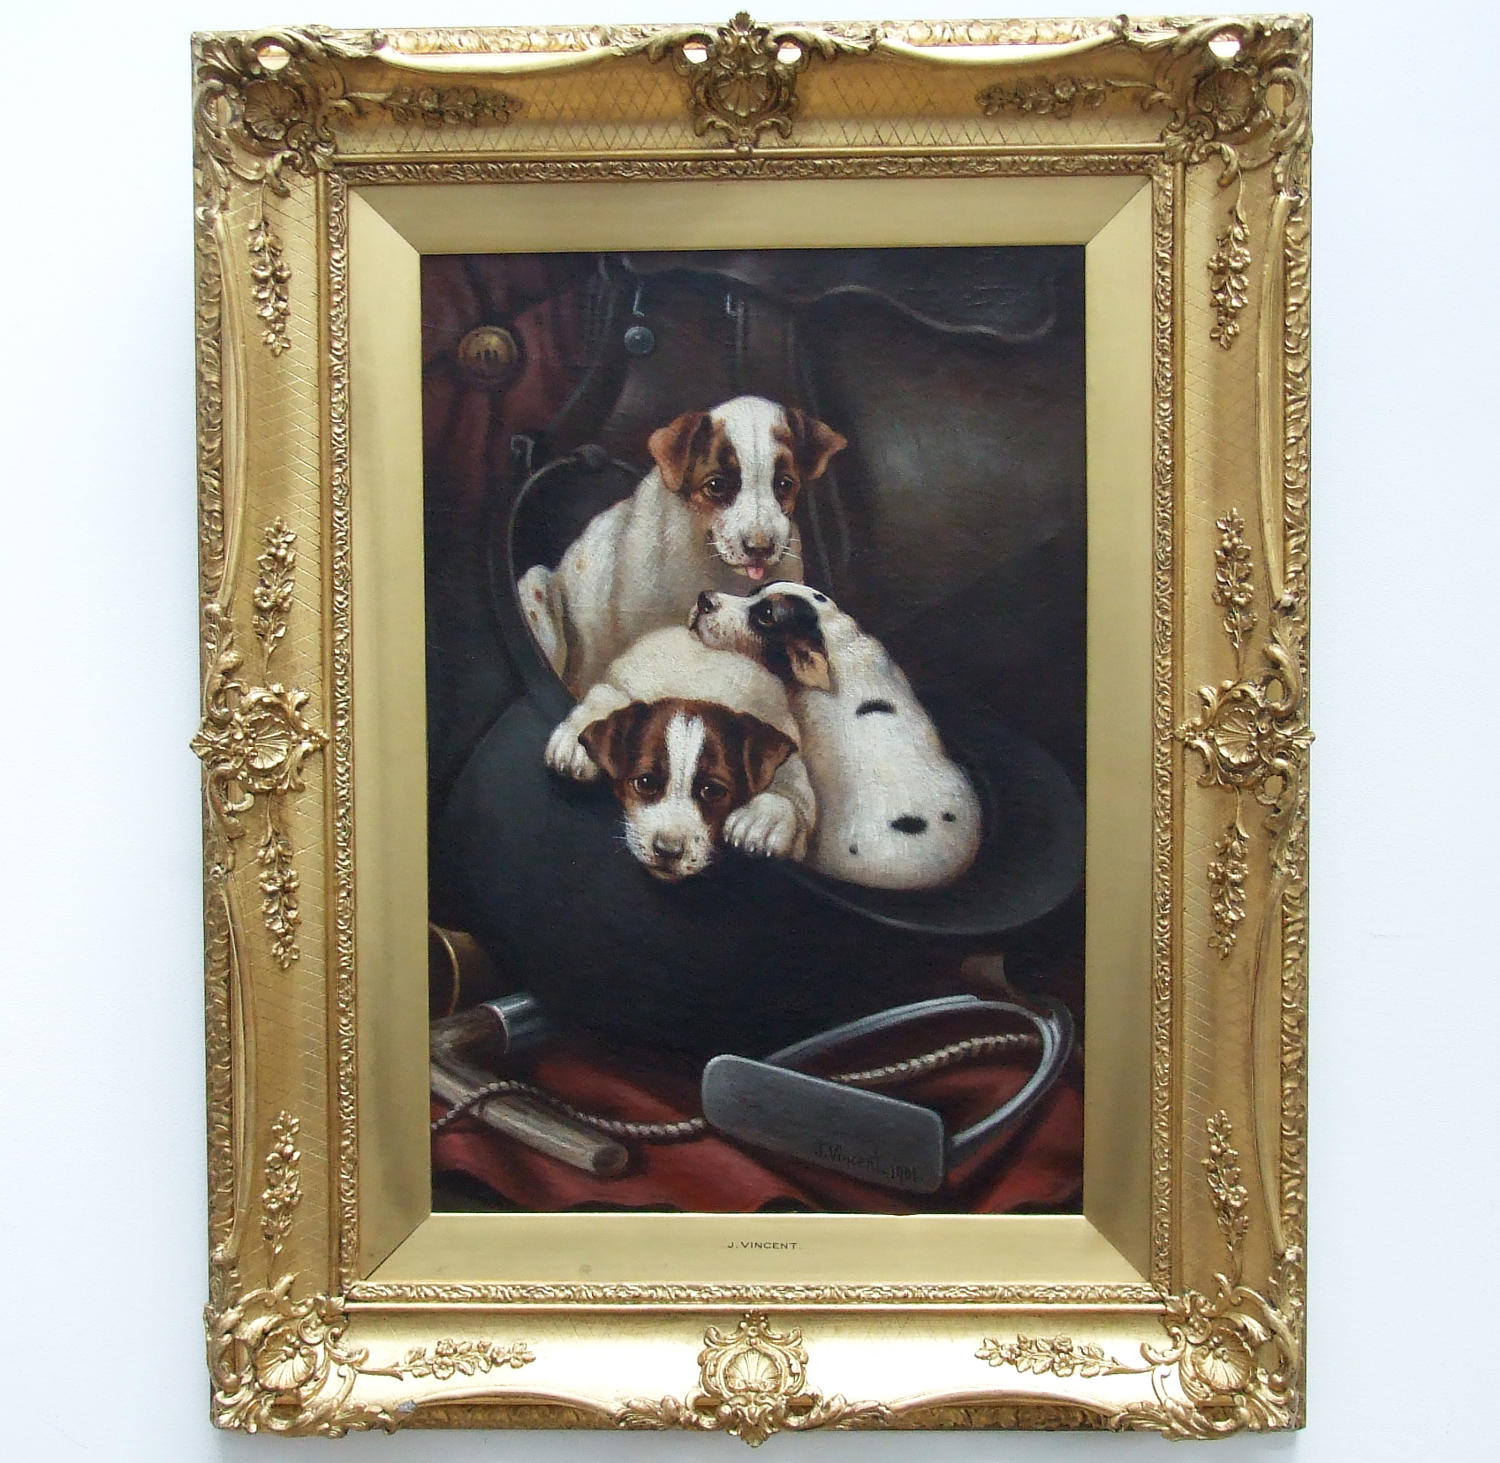 Charming oil painting of foxhound puppies by J.Vincent